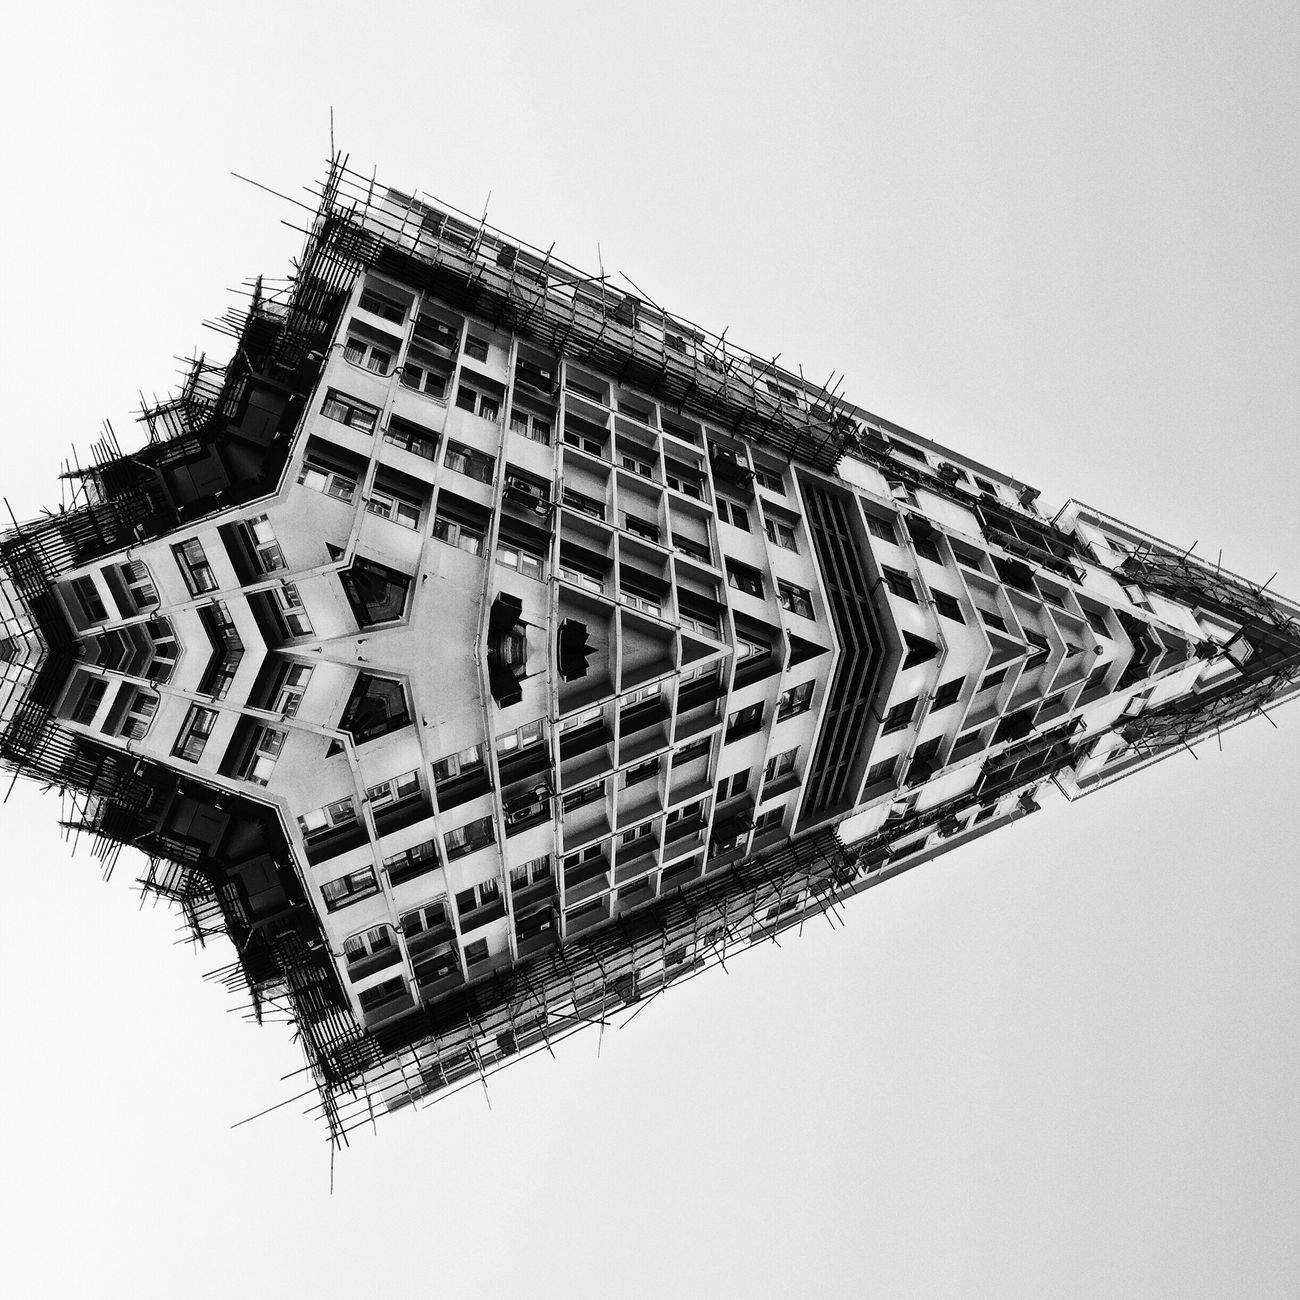 Arrow Double Exposure Doubleexposure Abstractart Abstract Art Abstract Art Artistic Symmetry Symmetrical Symmetryporn Black And White Black & White EyeEm Best Shots - Black + White Blackandwhite Photography Blackandwhite Monochrome Monochromatic Abstractarchitecture Rearchitseries